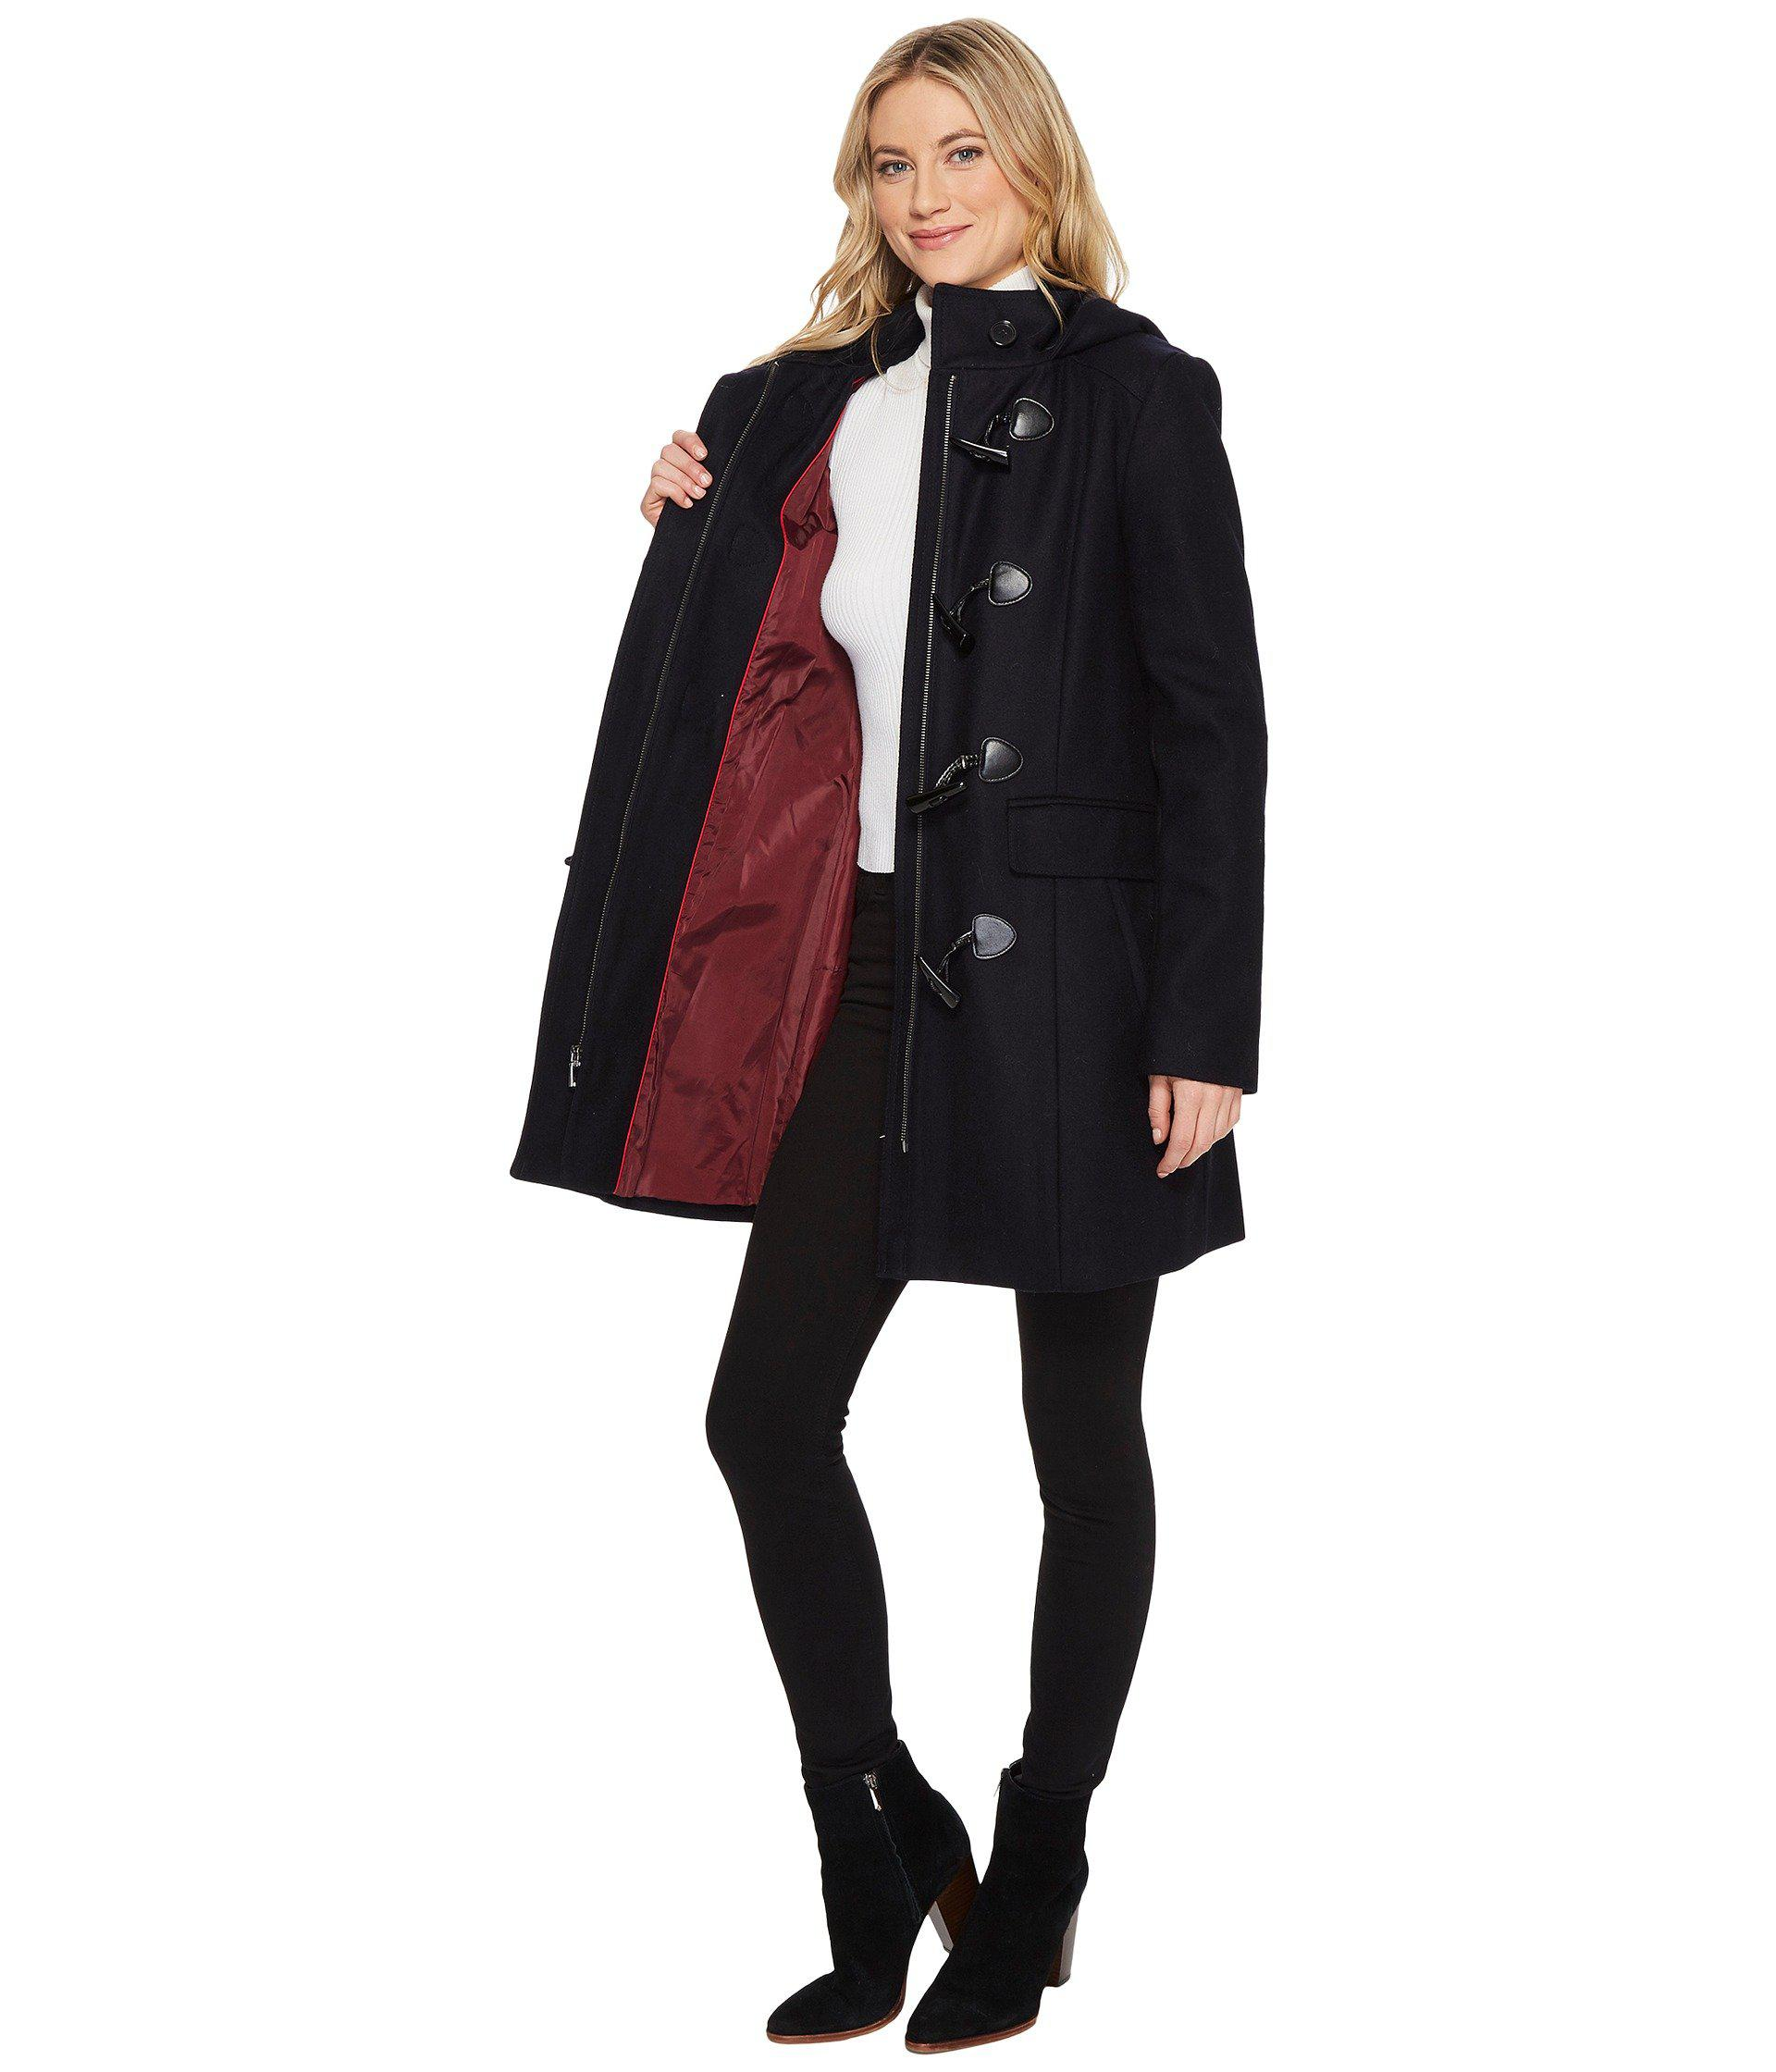 Smythe Wool Toggle Coat w/ Tags Cheap Real Finishline Cheap Shopping Online Cheap Best Store To Get Looking For 7qLHQO8izI